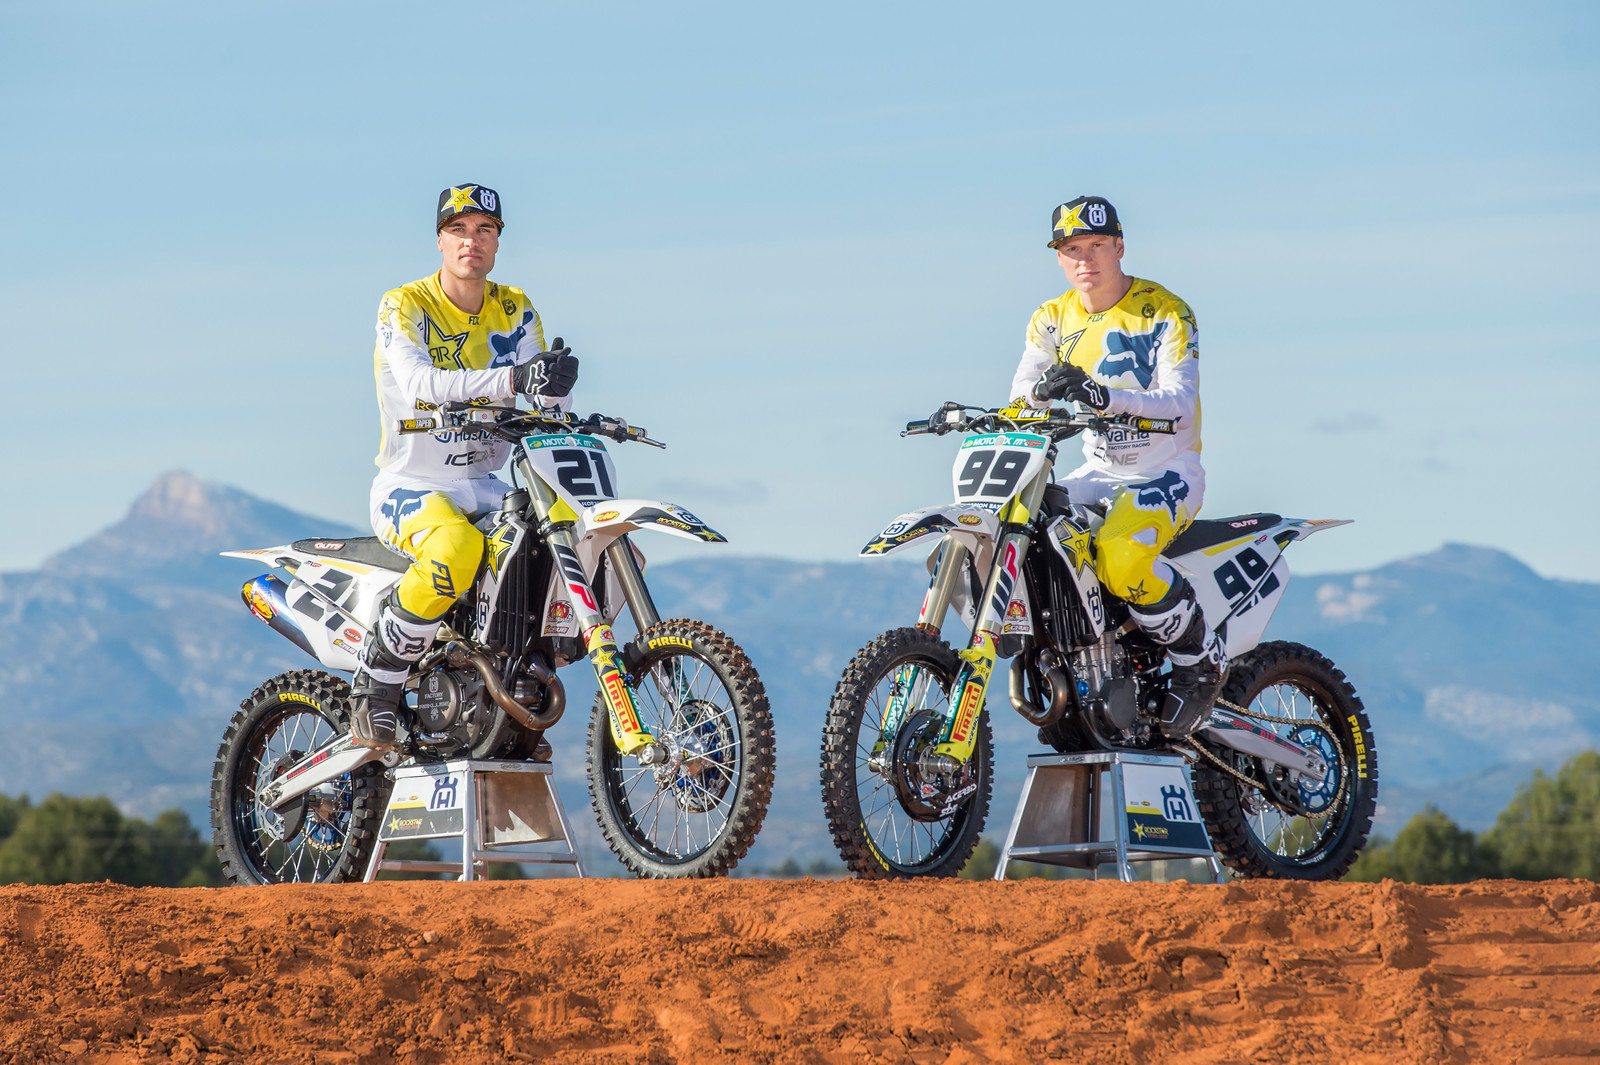 Gautier Paulin (left) and Max Anstie (right).